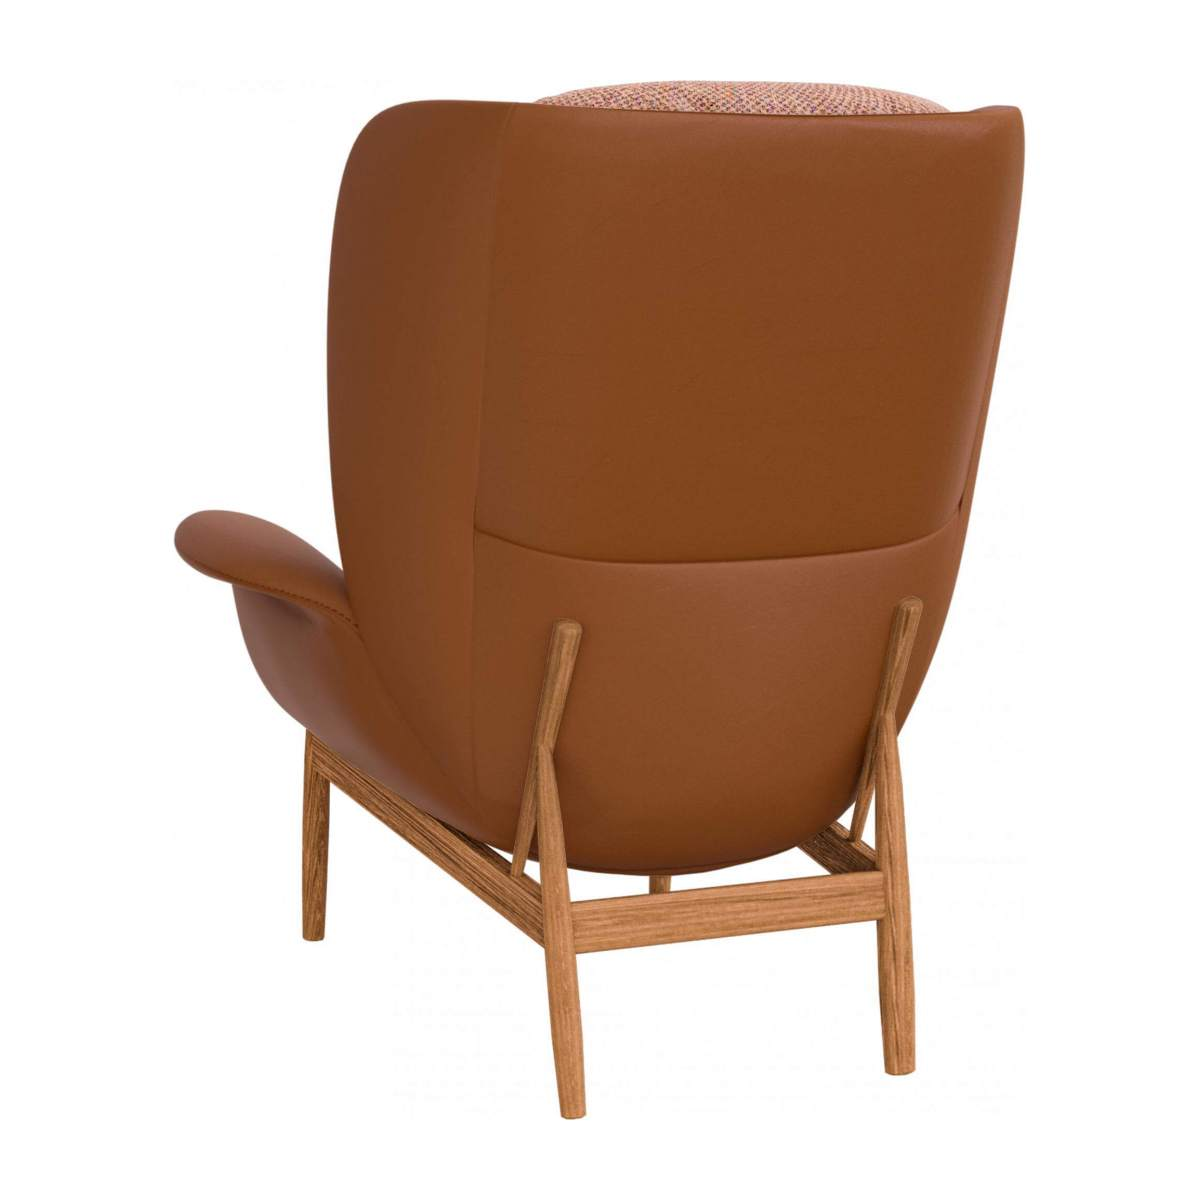 HERVE/ARMCHAIR LTHR & BELLAGIO ORANGE